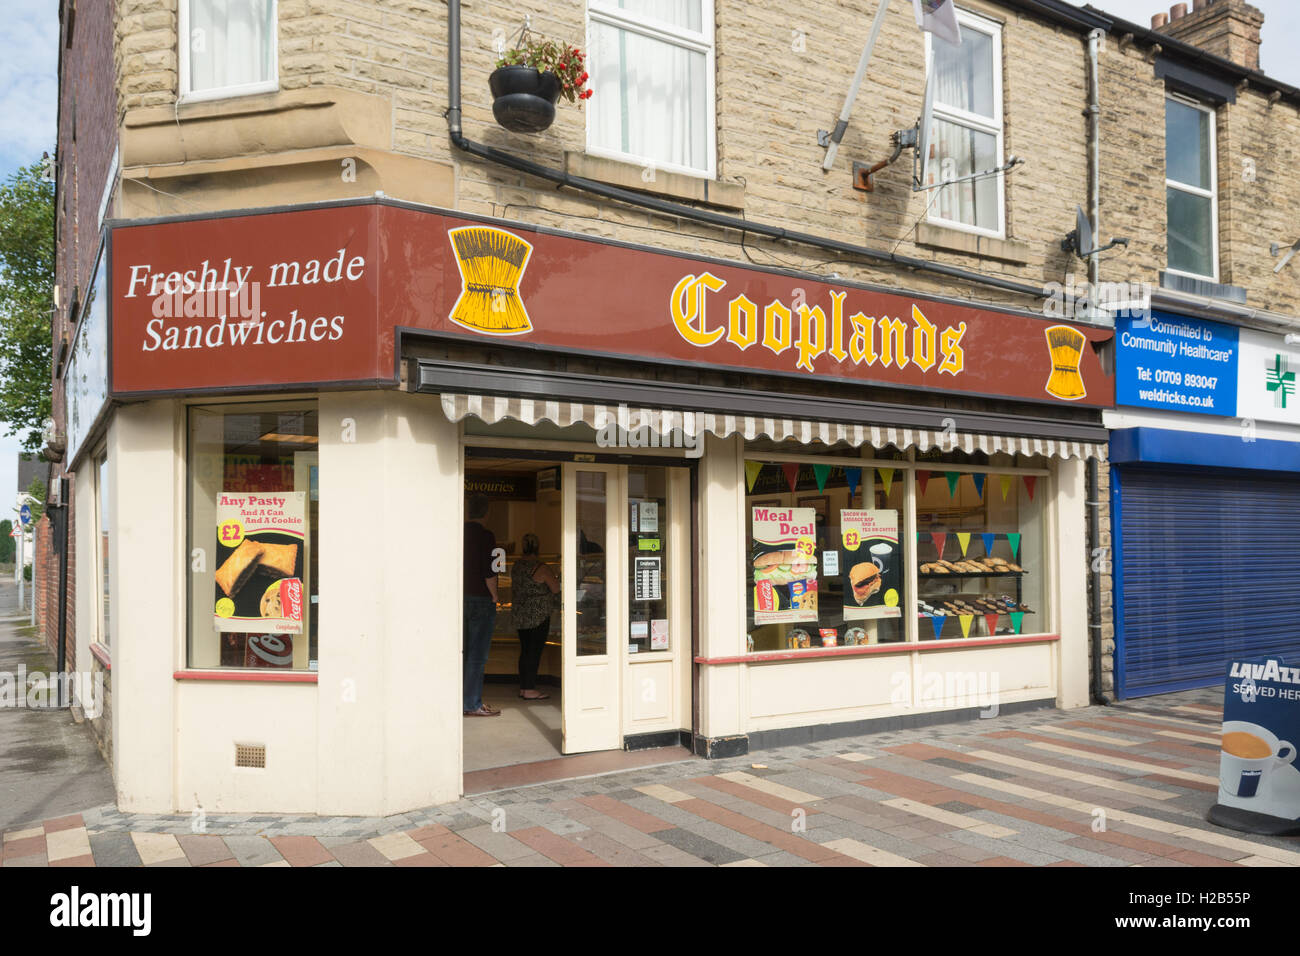 Cooplands panetteria e sandwich shop, Goldthorpe, South Yorkshire Immagini Stock